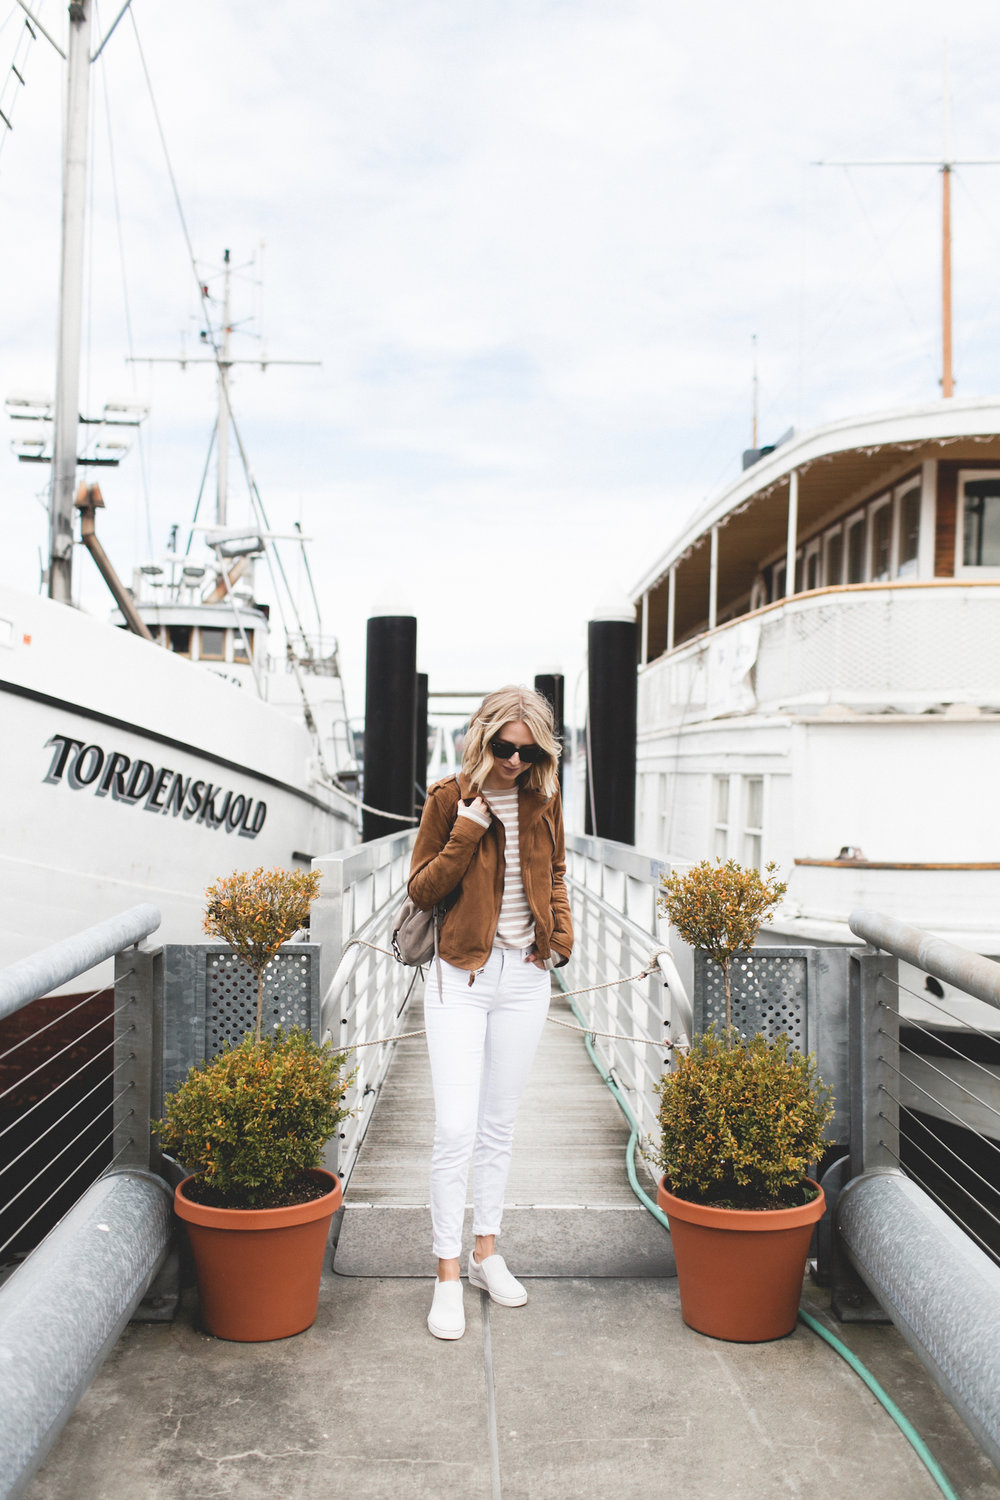 Dockside | truelane